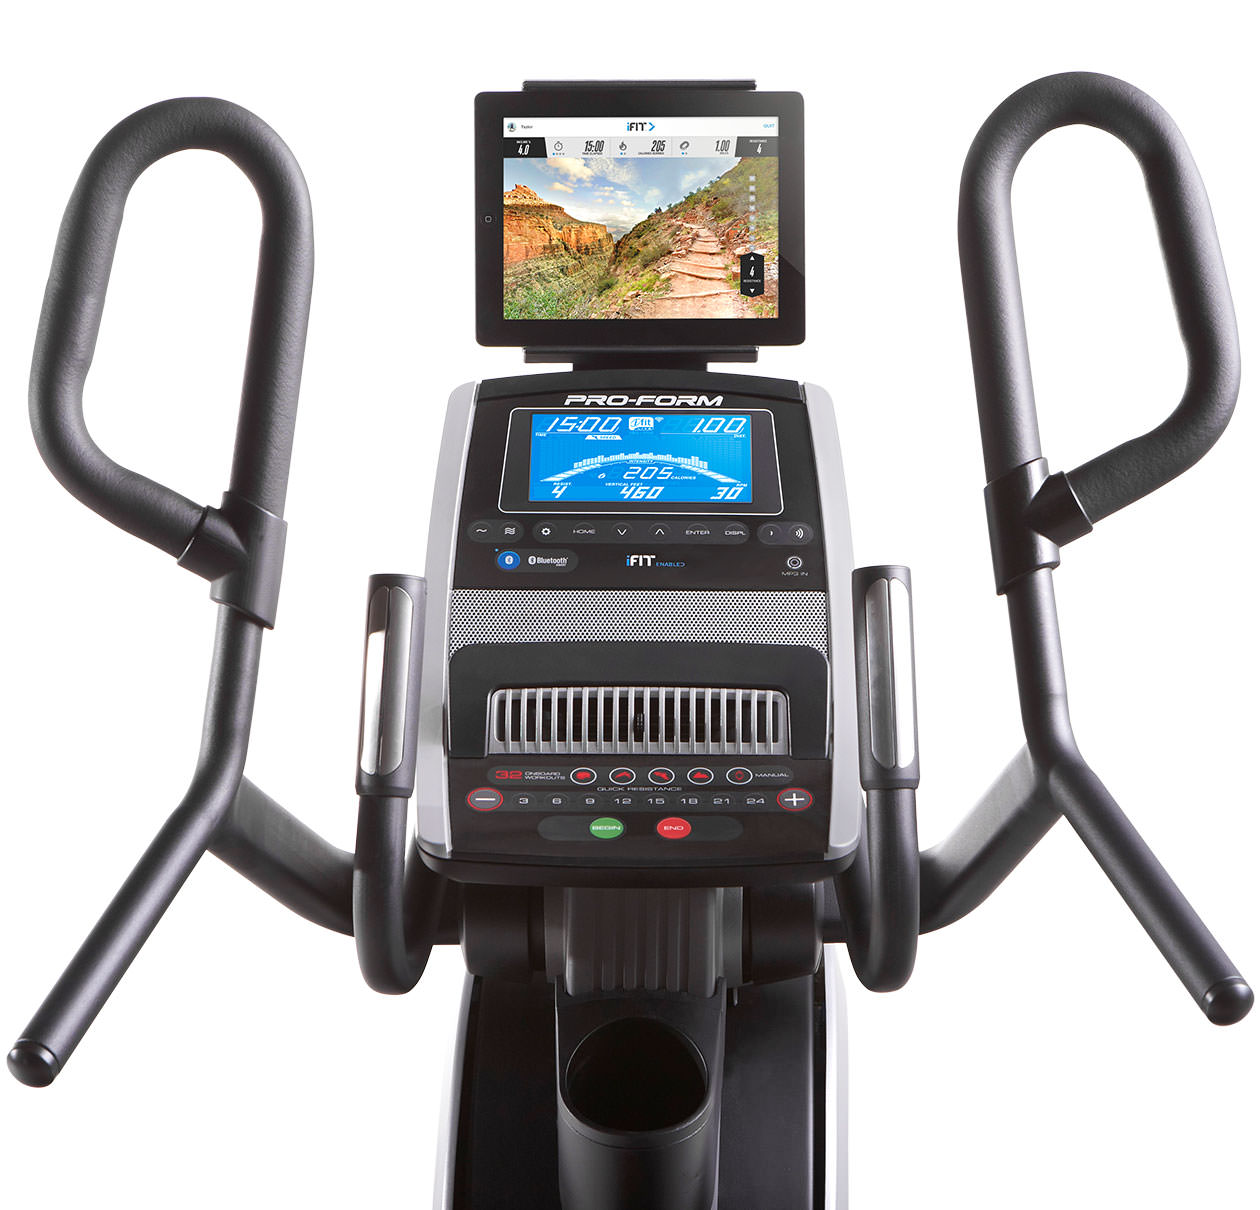 Proform HIIT Trainer gallery image 4